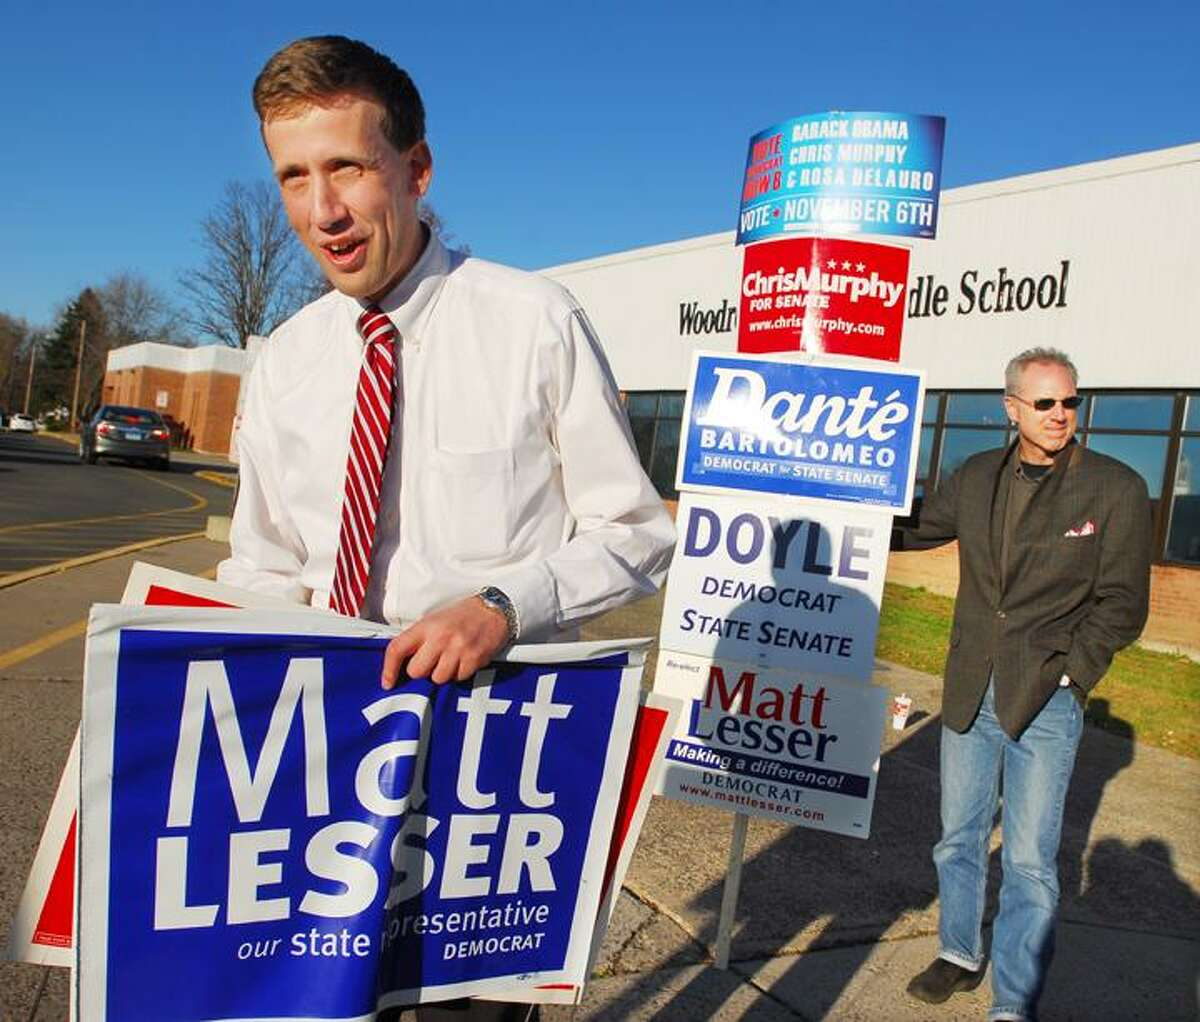 Catherine Avalone/The Middletown PressMatt Lesser, State Representative D-Middletown, campaigns in the 100th District Tuesday afternoon in front of Woodrow Wilson Middle School at 370 Hunting Hill Avenue in Middletown. Dan Pickett, Chairman of the Democratic Committee Town Committee is at right.